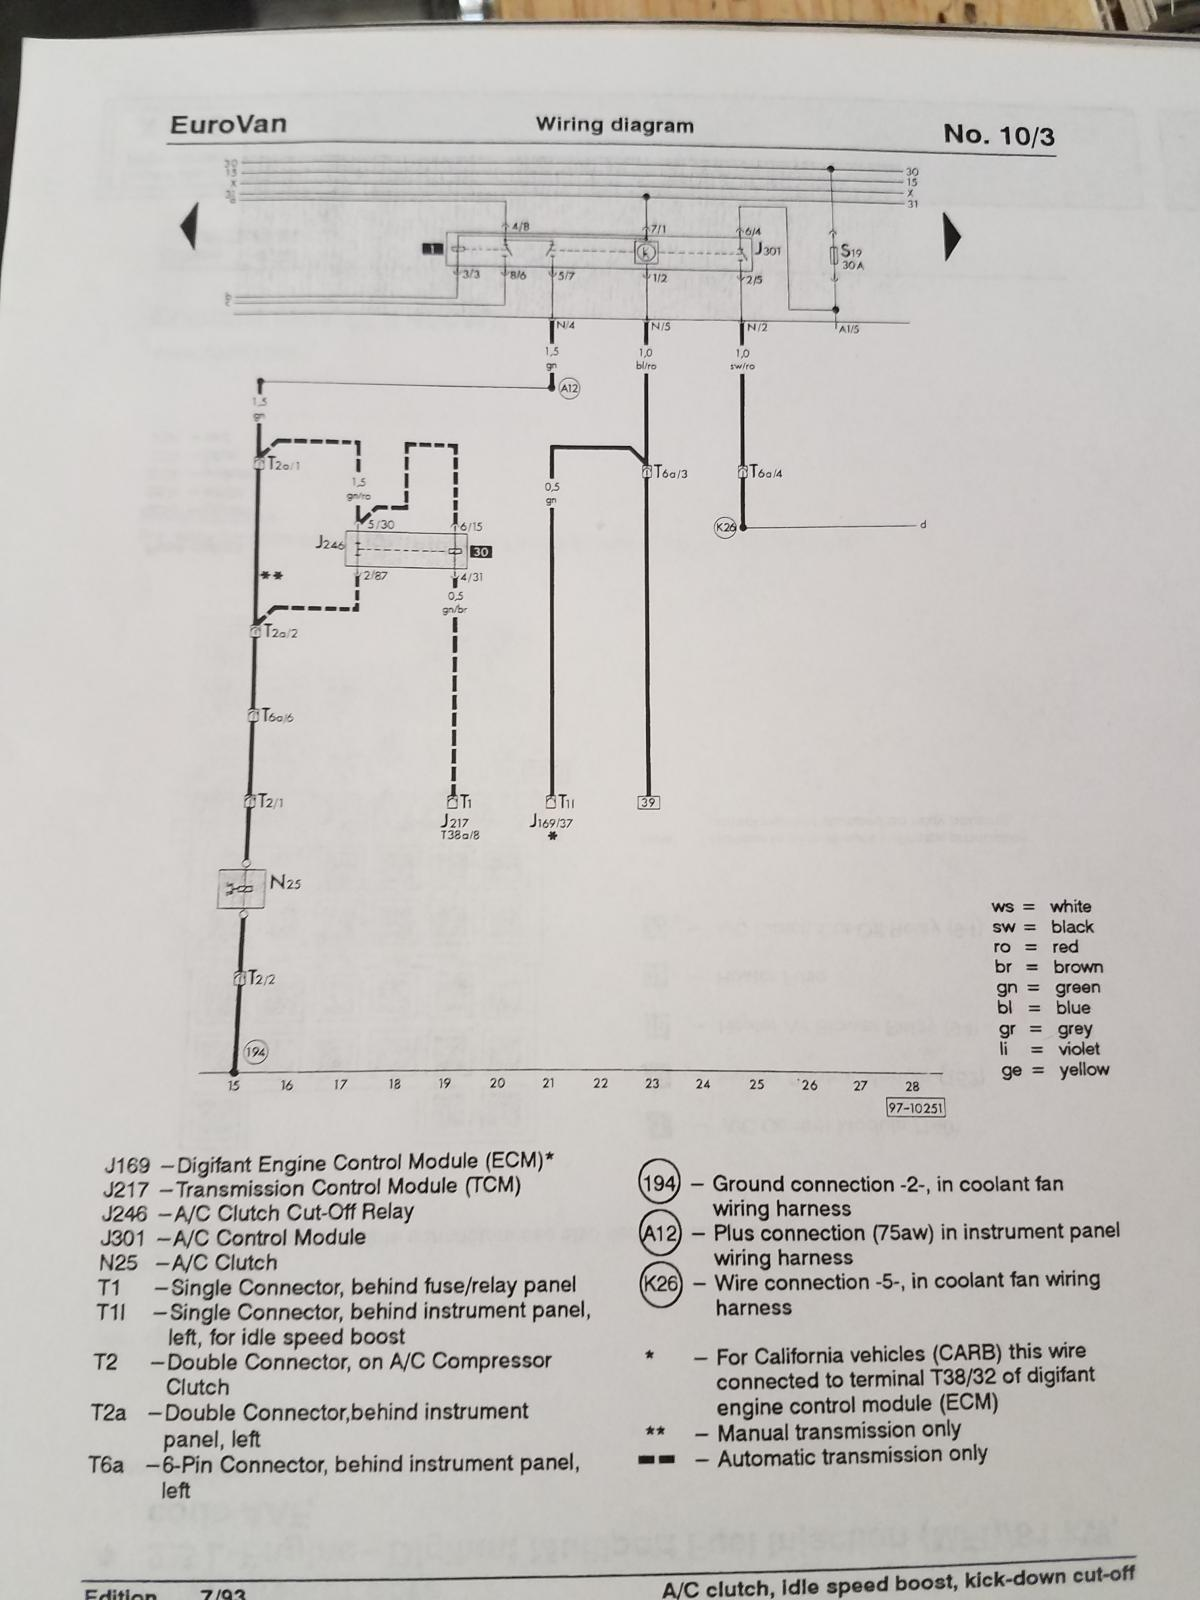 Eurovan View Topic A C Cut Off Relay On Circuit Automatic Diagram Image May Have Been Reduced In Size Click To Fullscreen